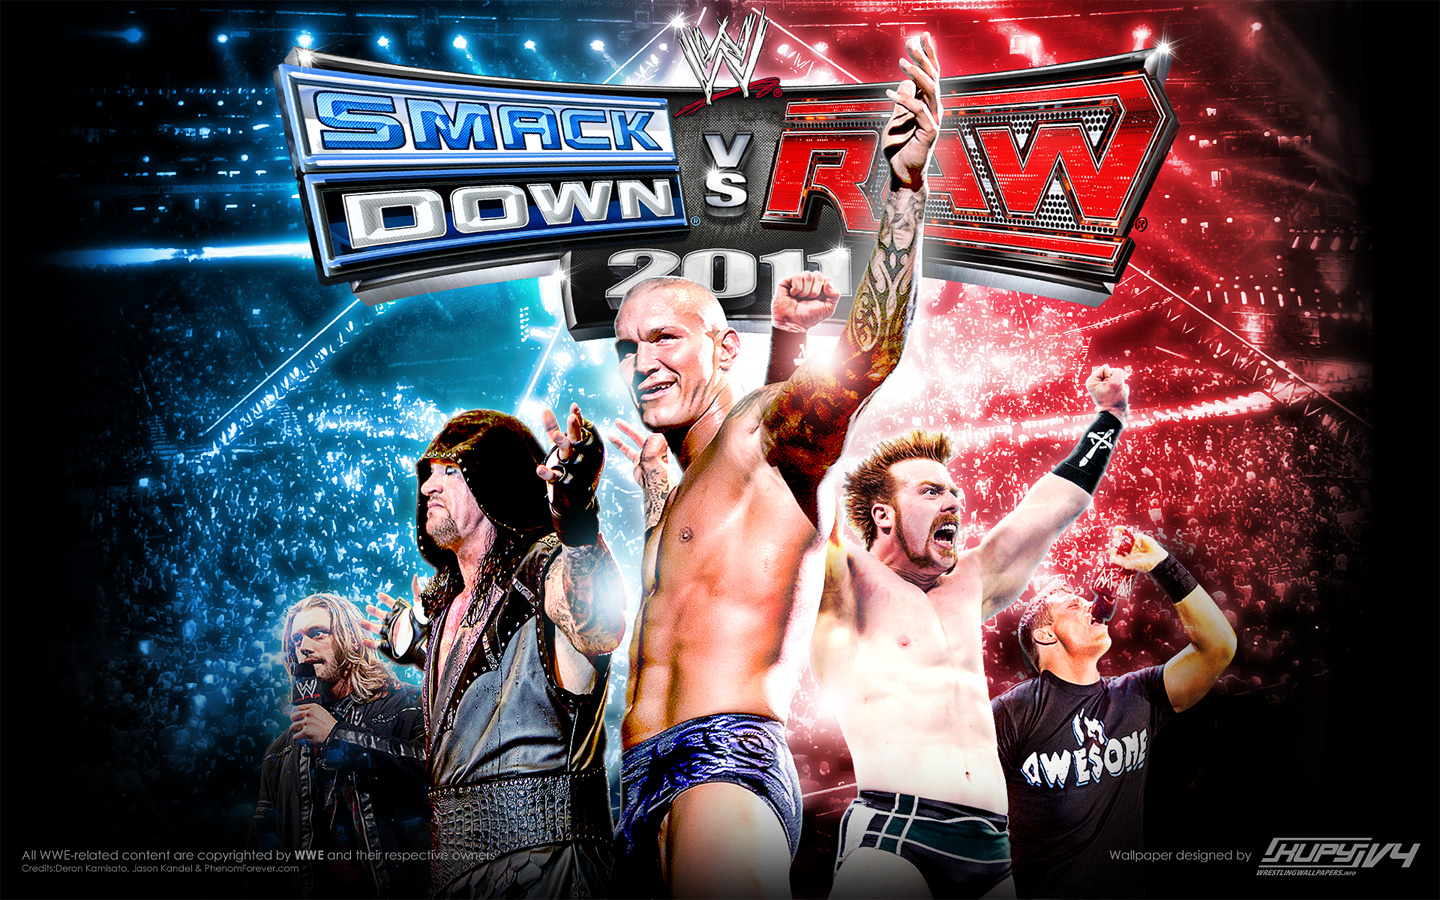 Download Game Wwe Smackdown Vs Raw Pc – Ridghardland92 Site